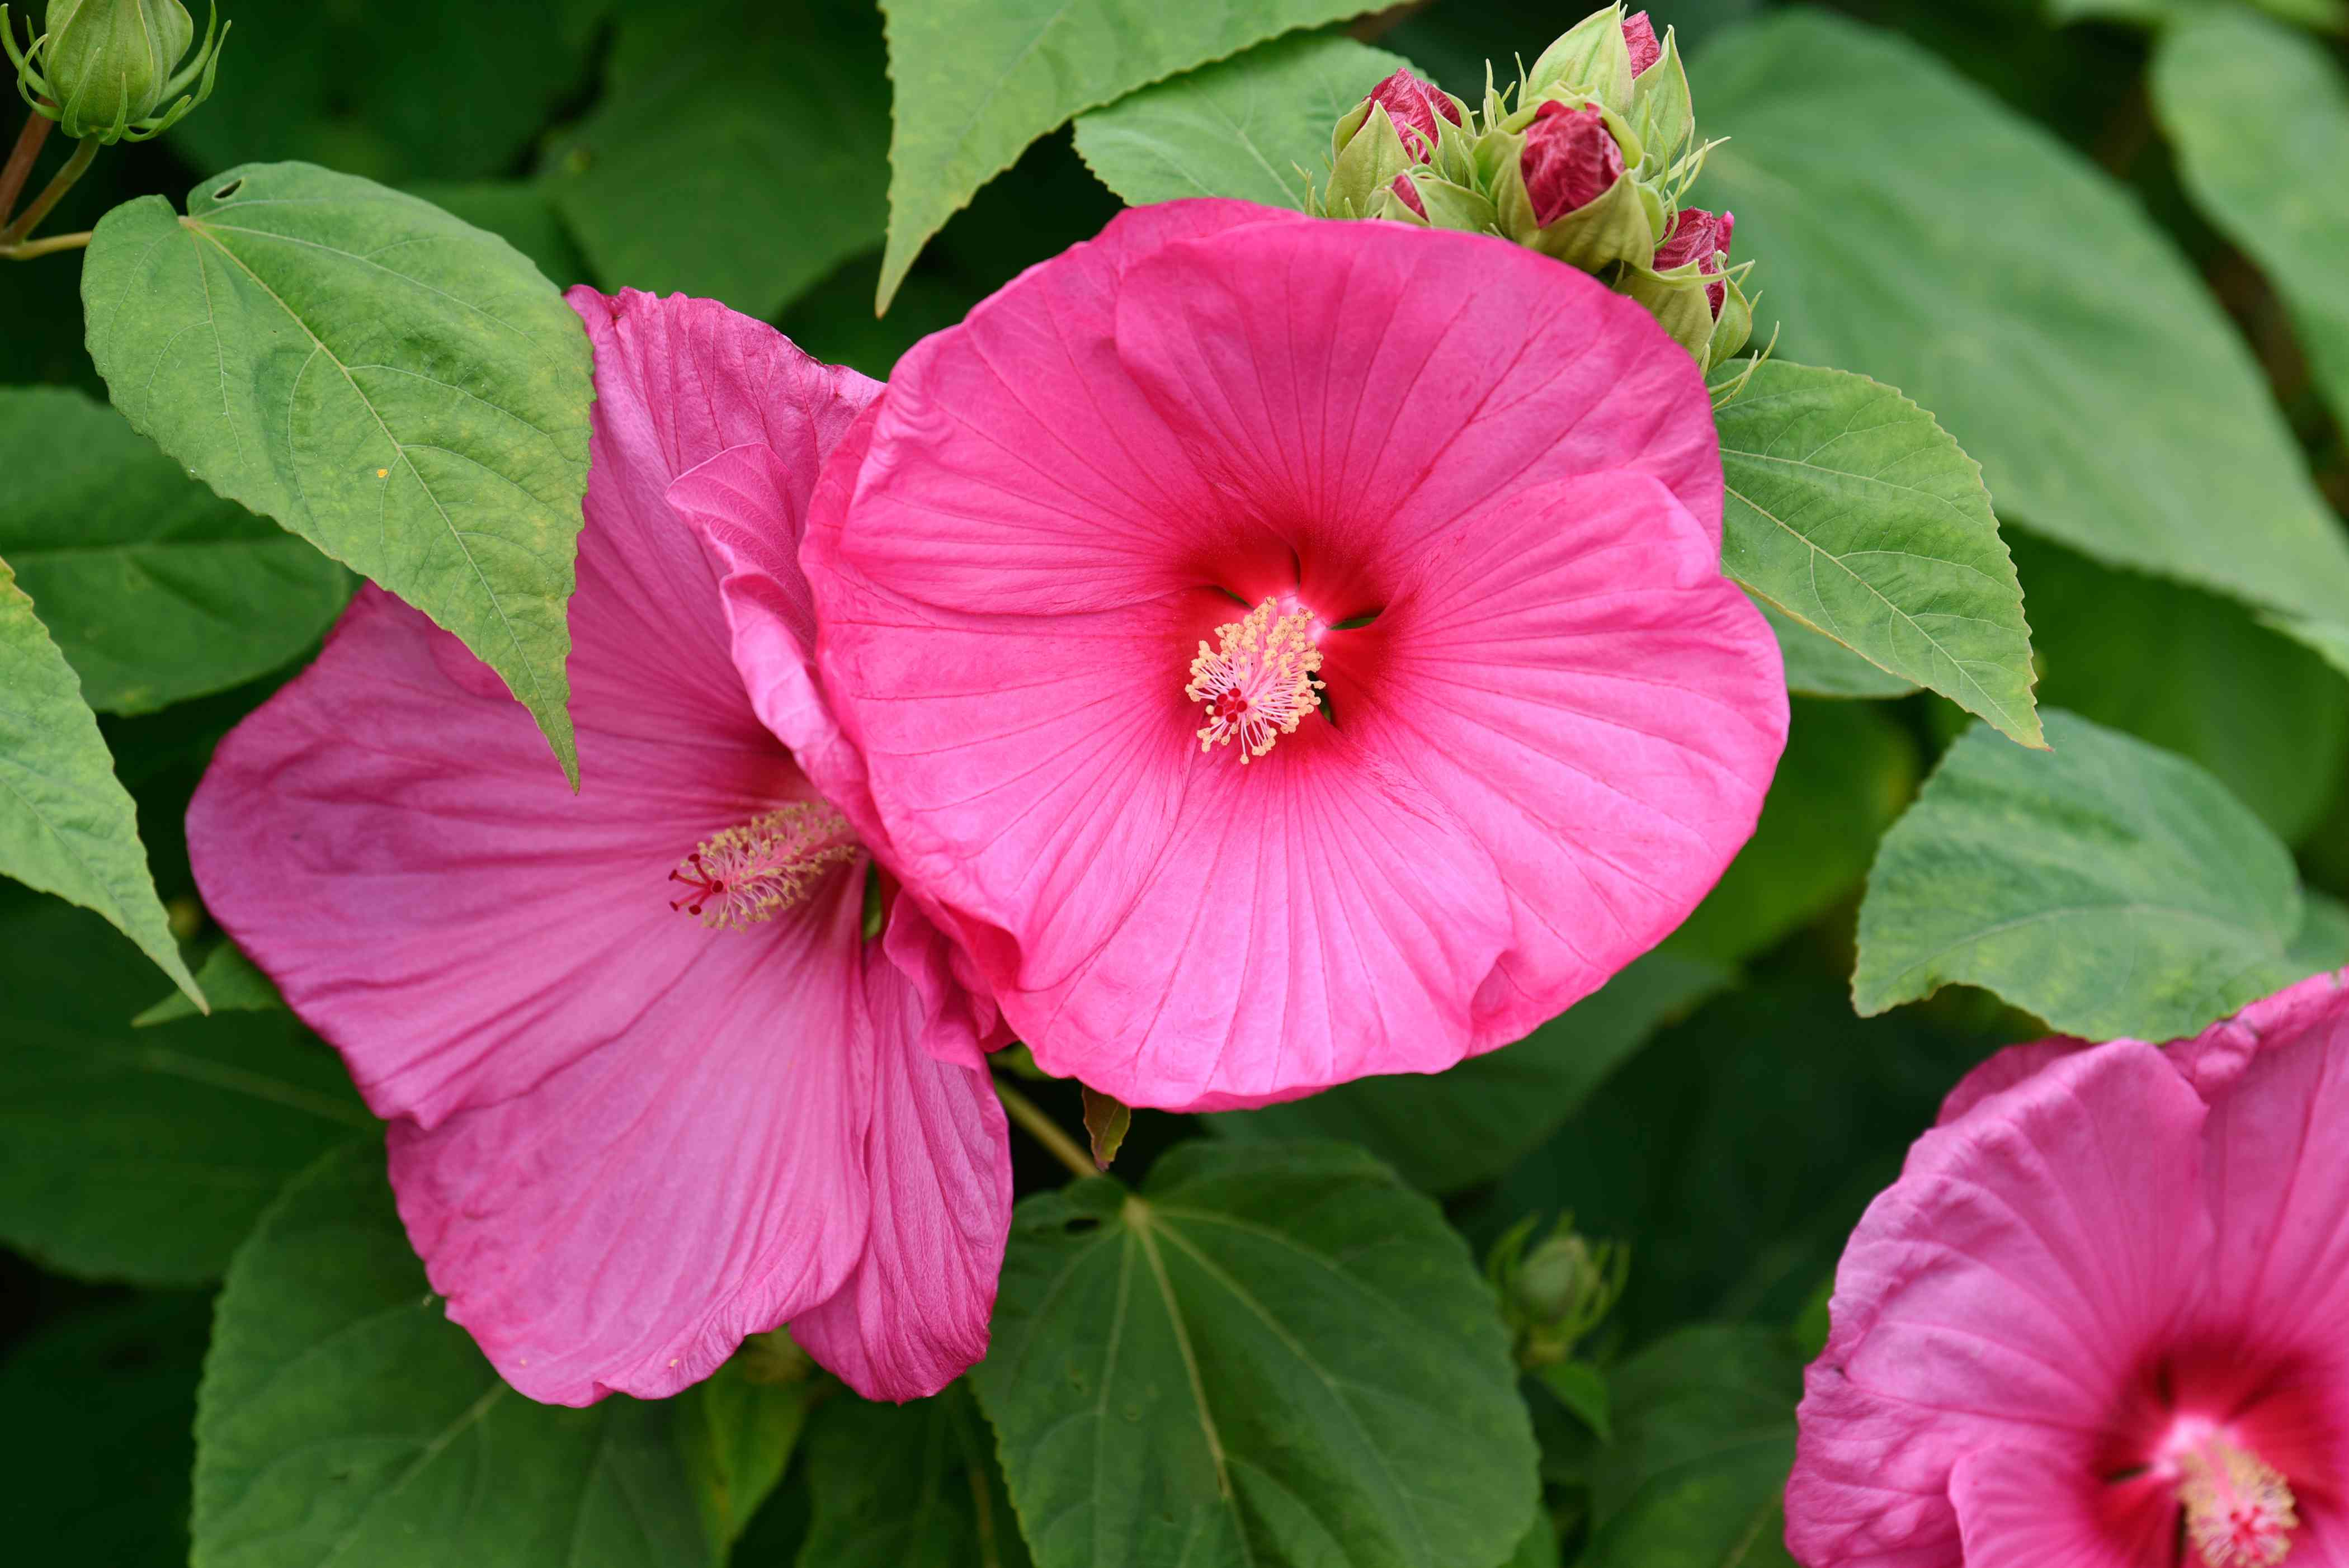 Hardy hibiscus plant with pink trumpet-like flowers and buds clustered between leaves closeup